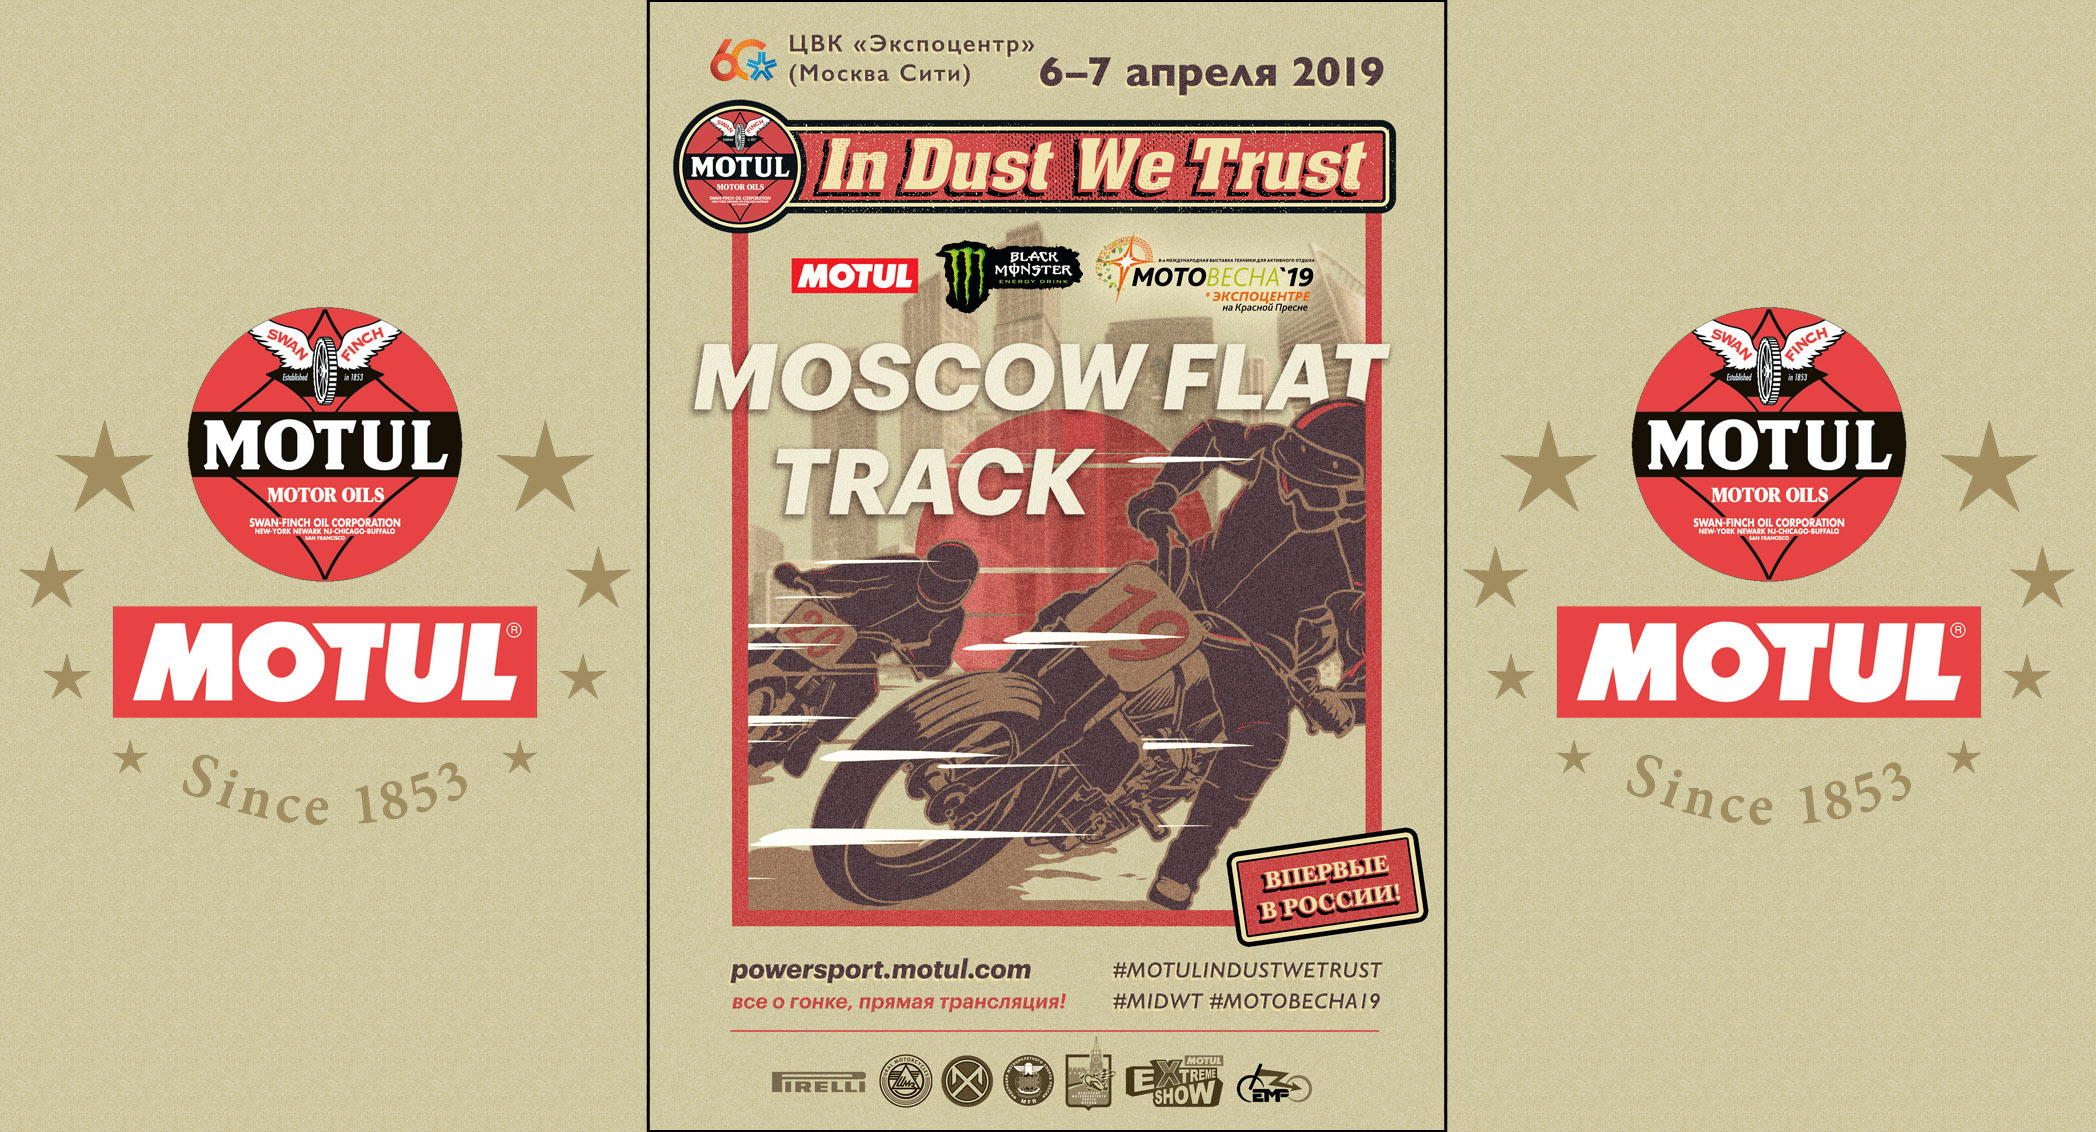 MOTUL IN DUST WE TRUST 2019